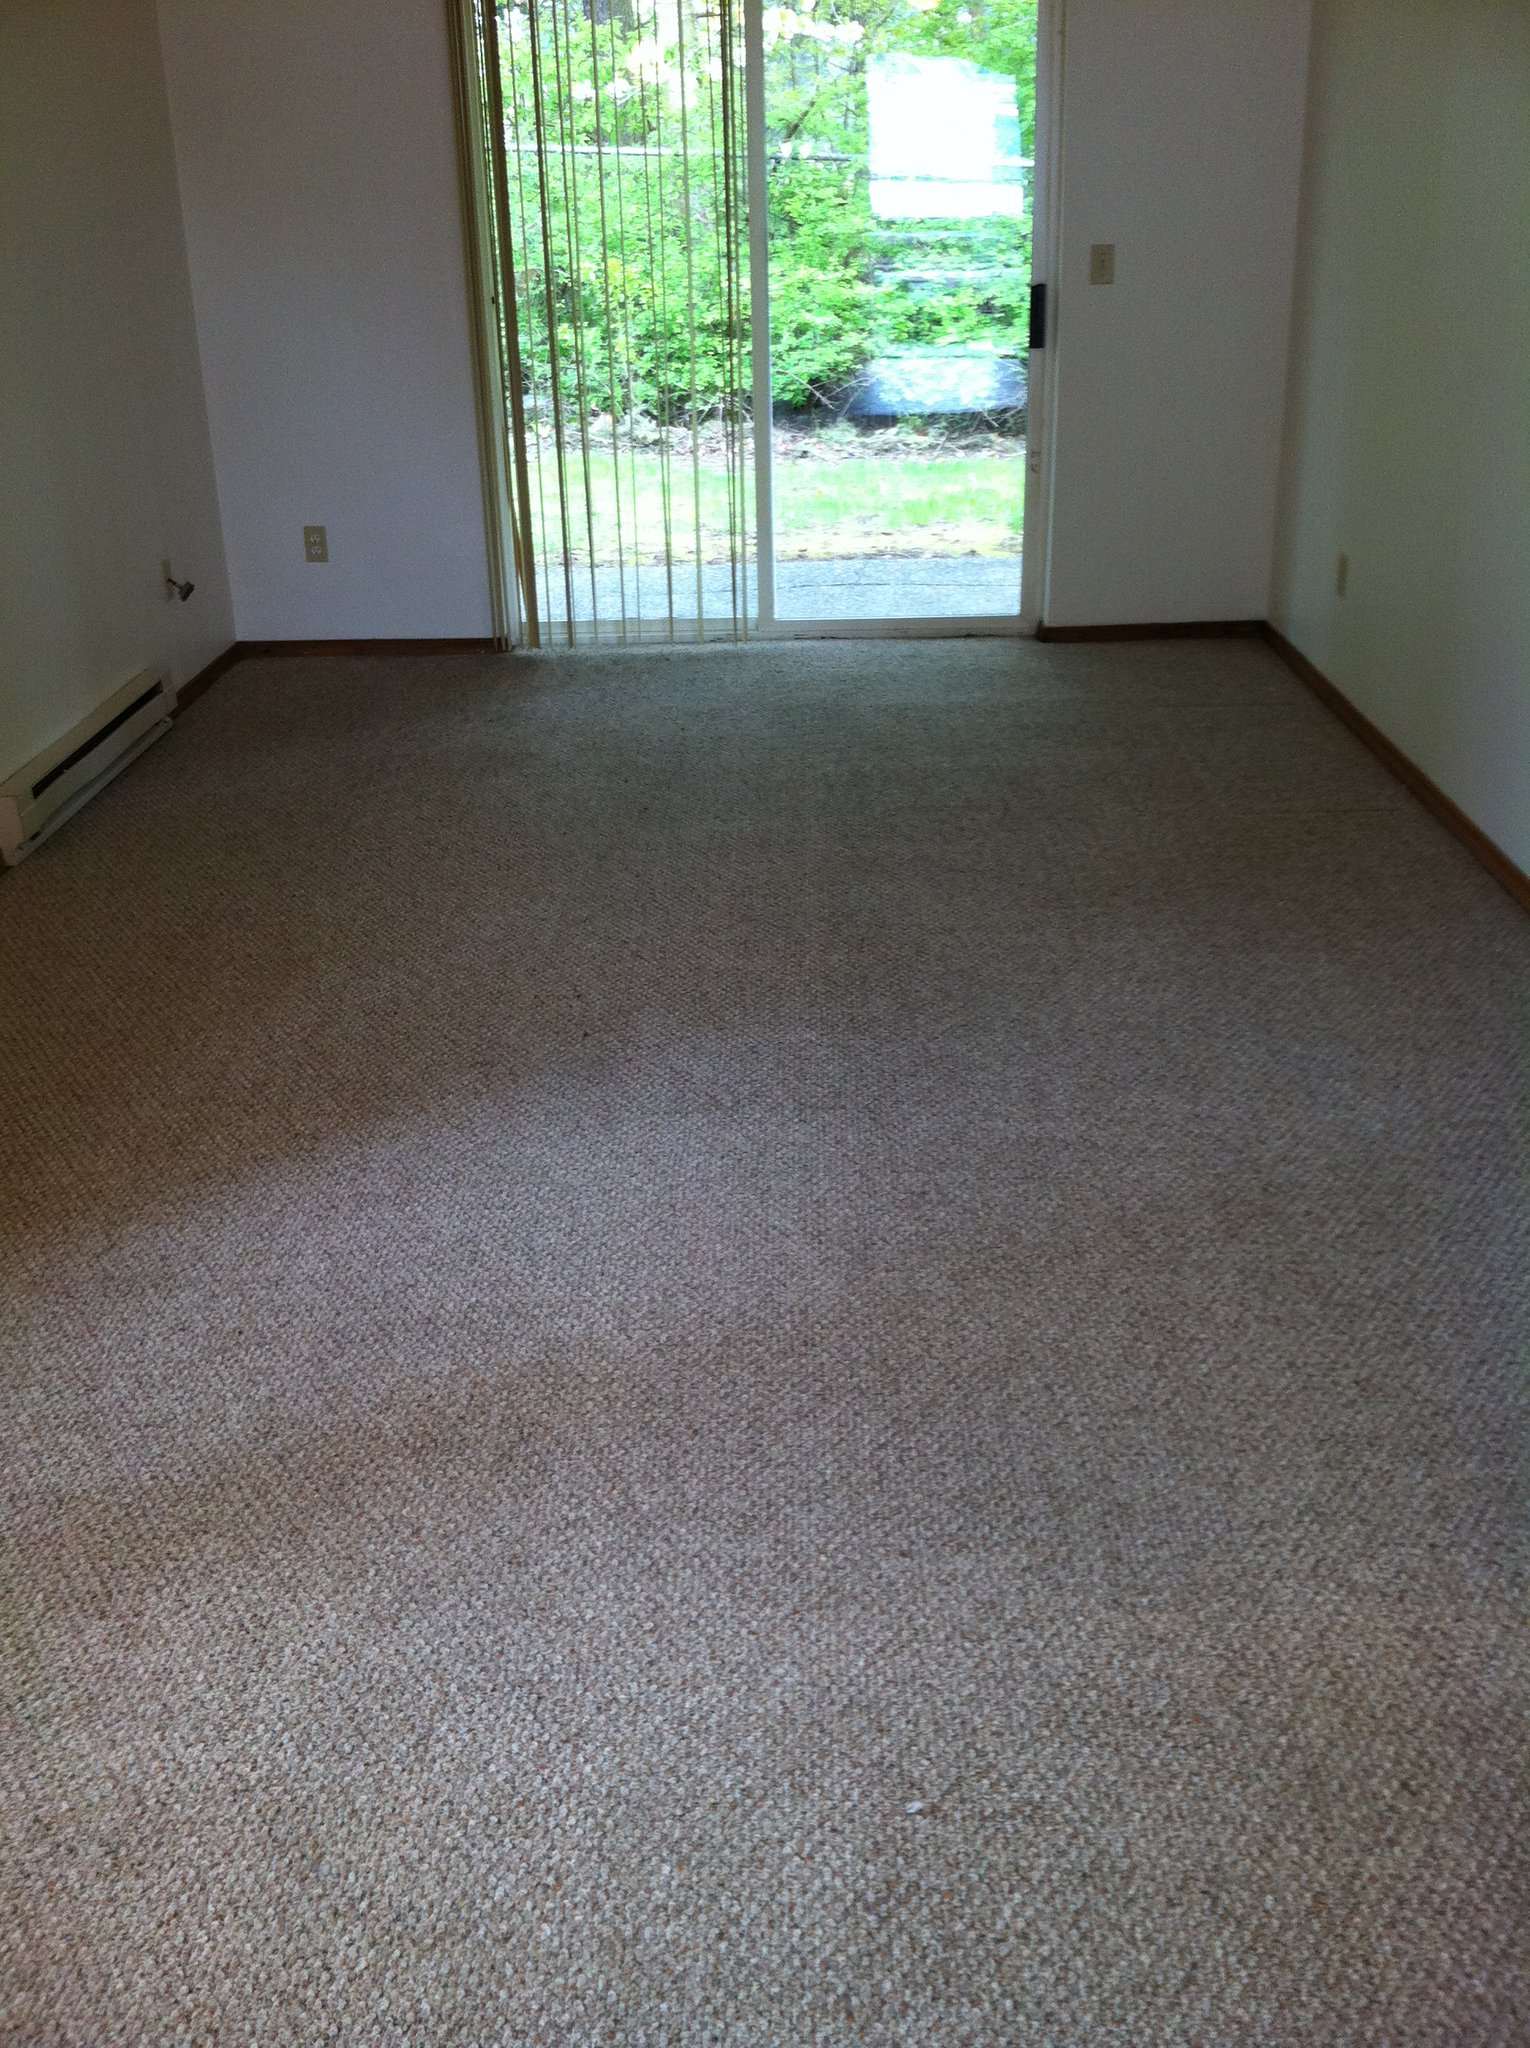 ... carpet cleaning project 3 ...